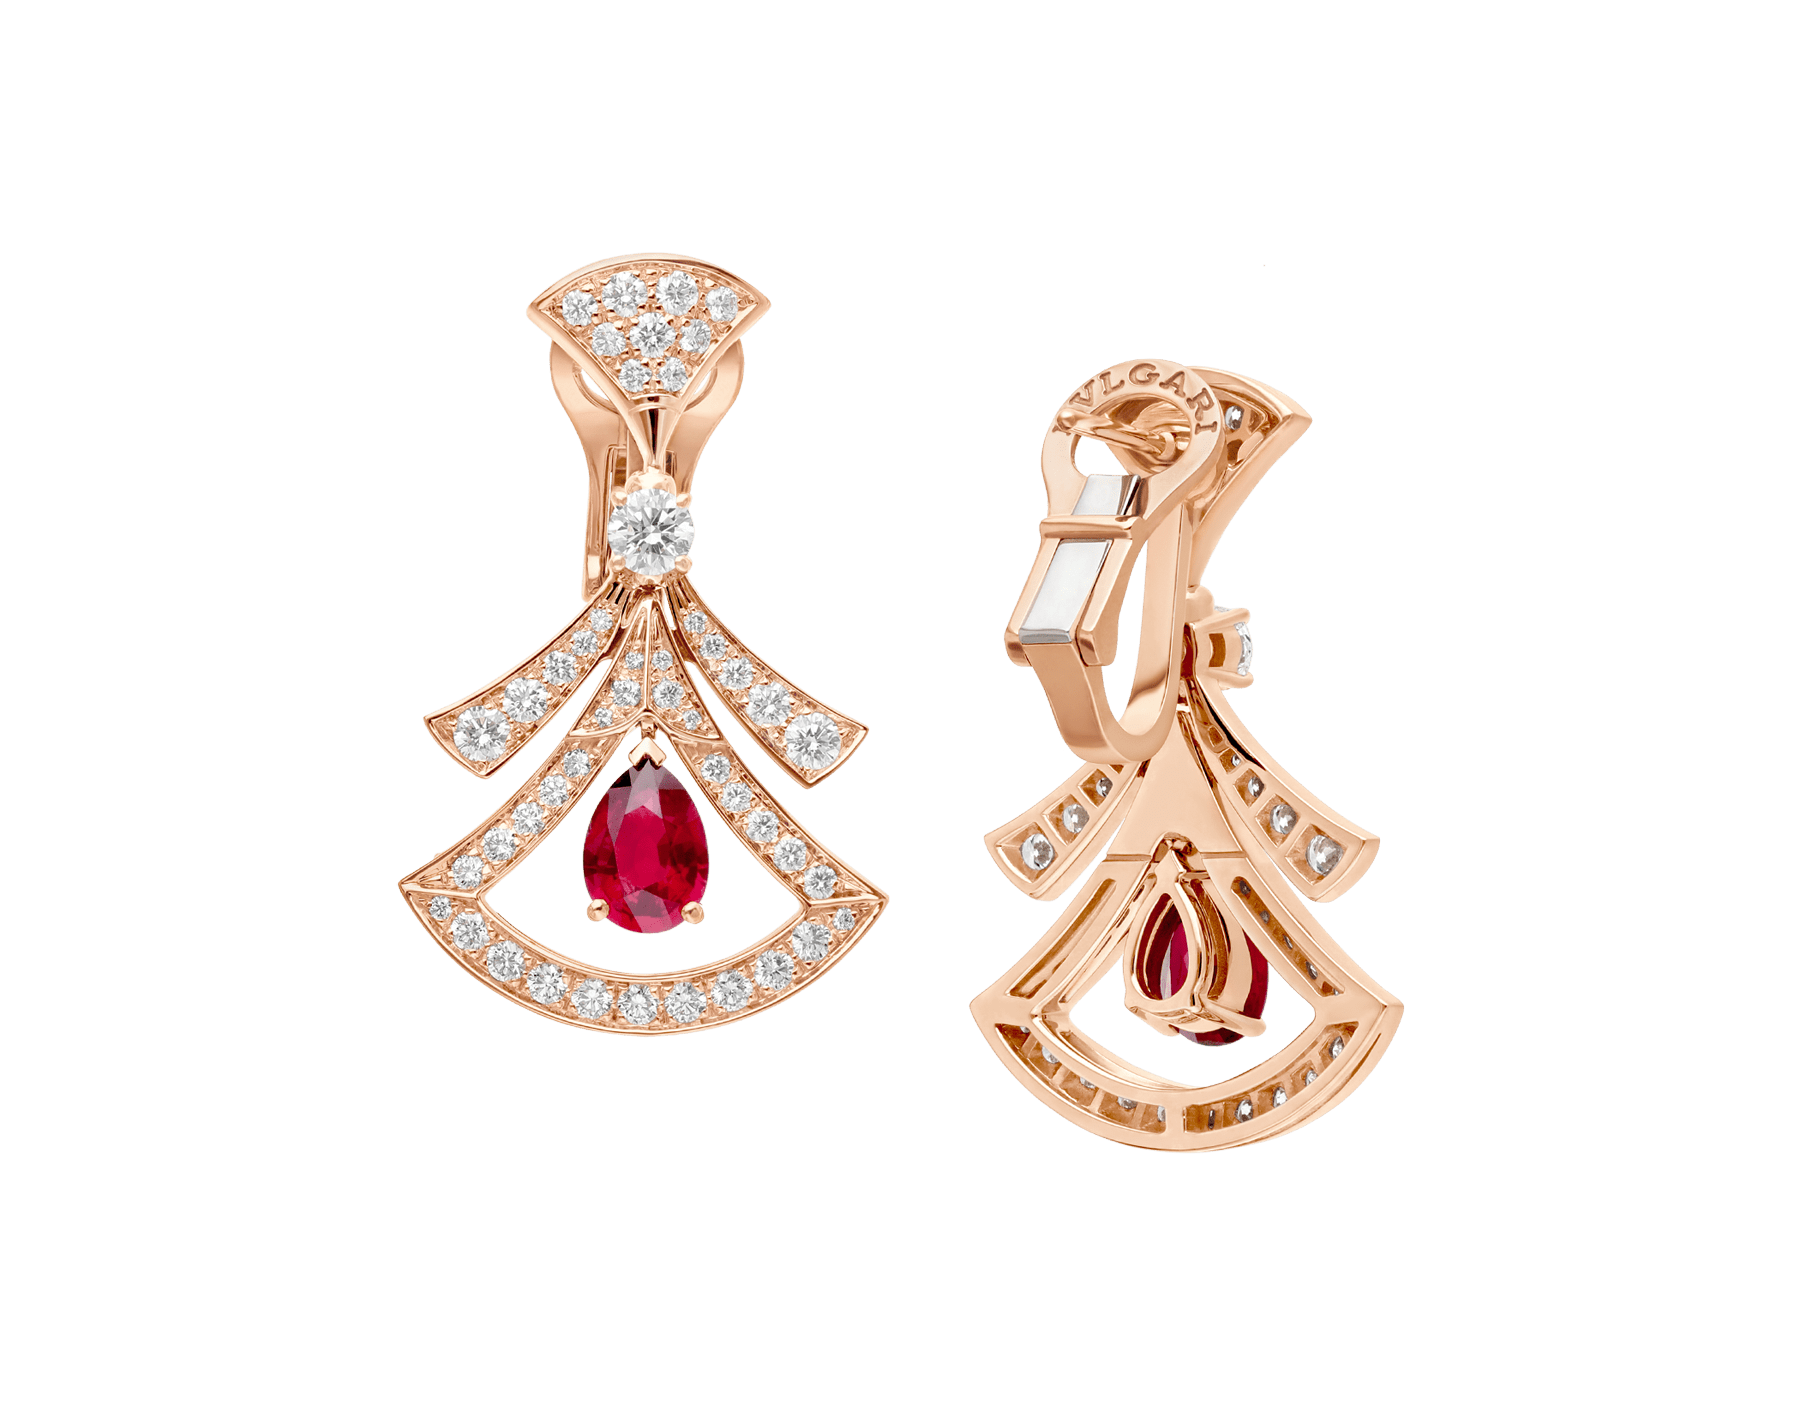 DIVAS' DREAM 18 kt rose gold openwork earrings, set with pear-shaped rubies, round brilliant-cut and pavé diamonds. 356954 image 3